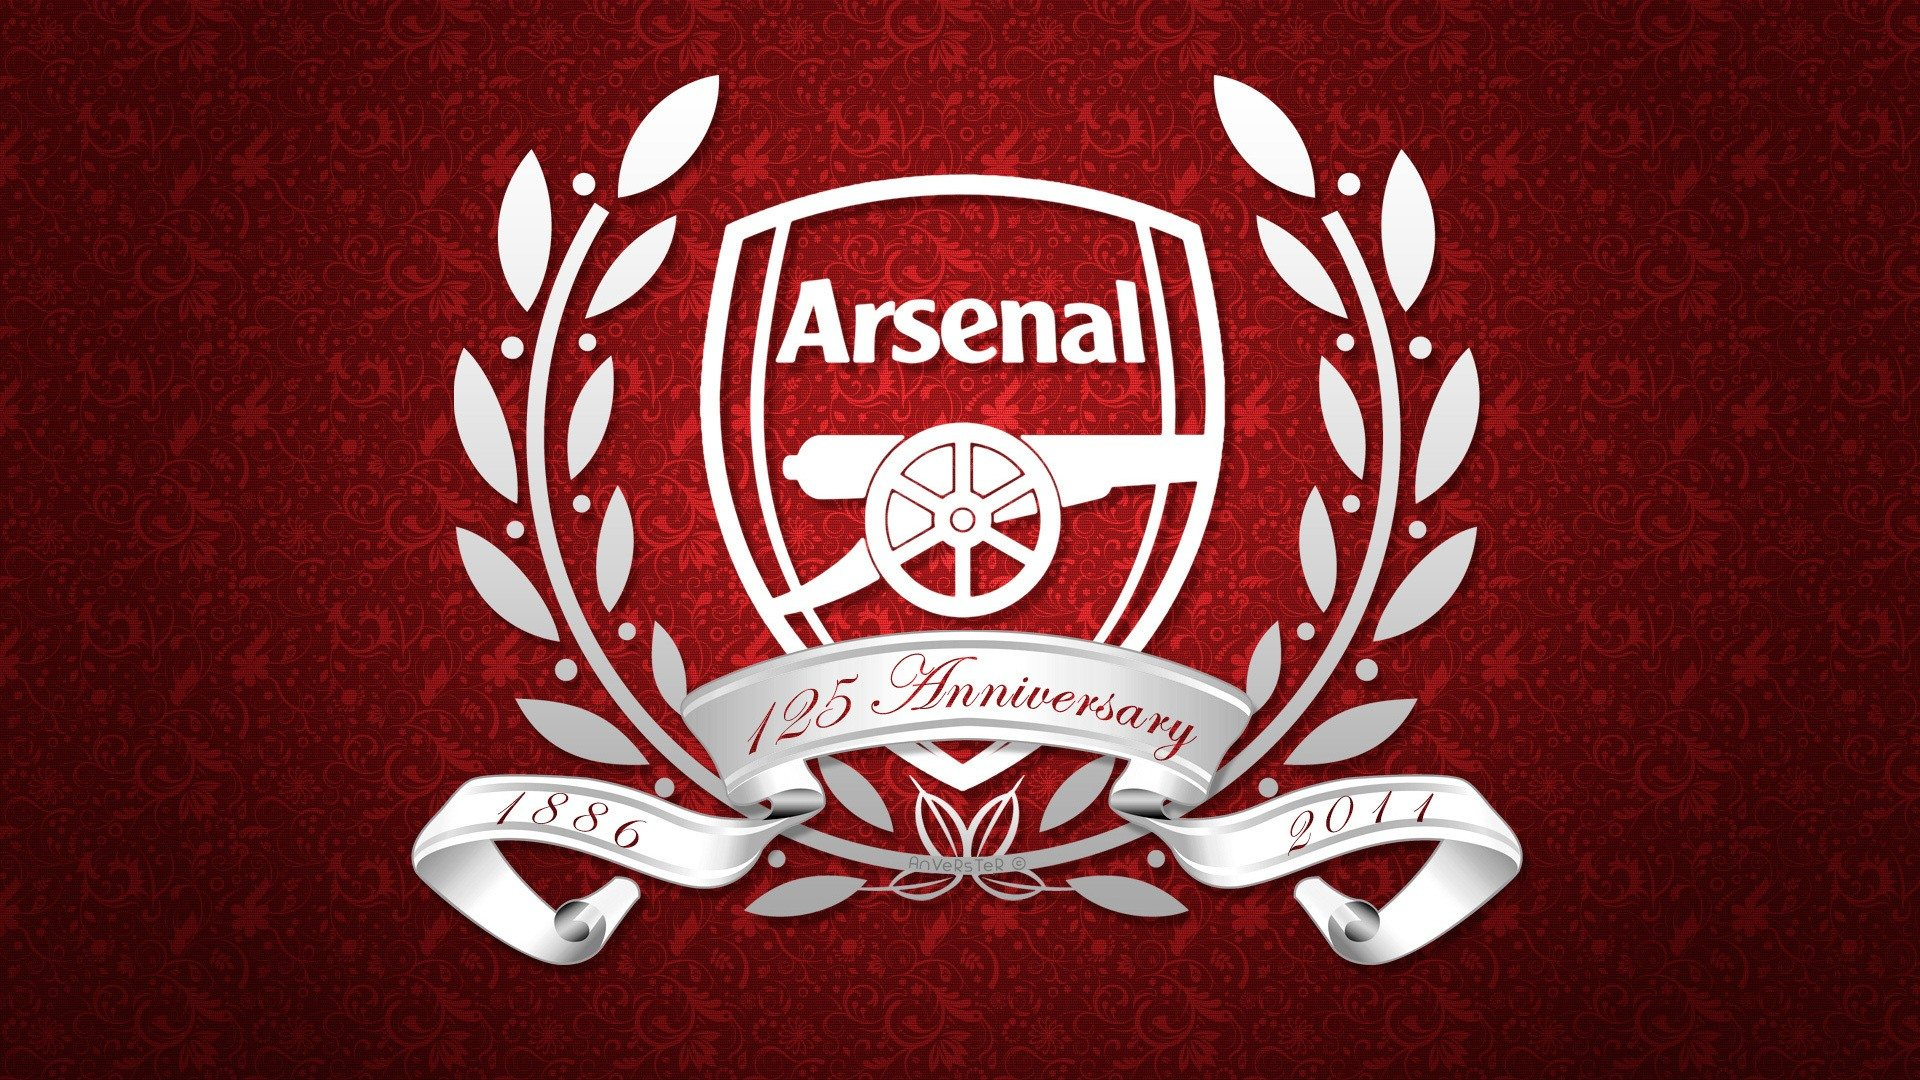 London Logo Wallpaper Arsenal-london-logo-1920x1080